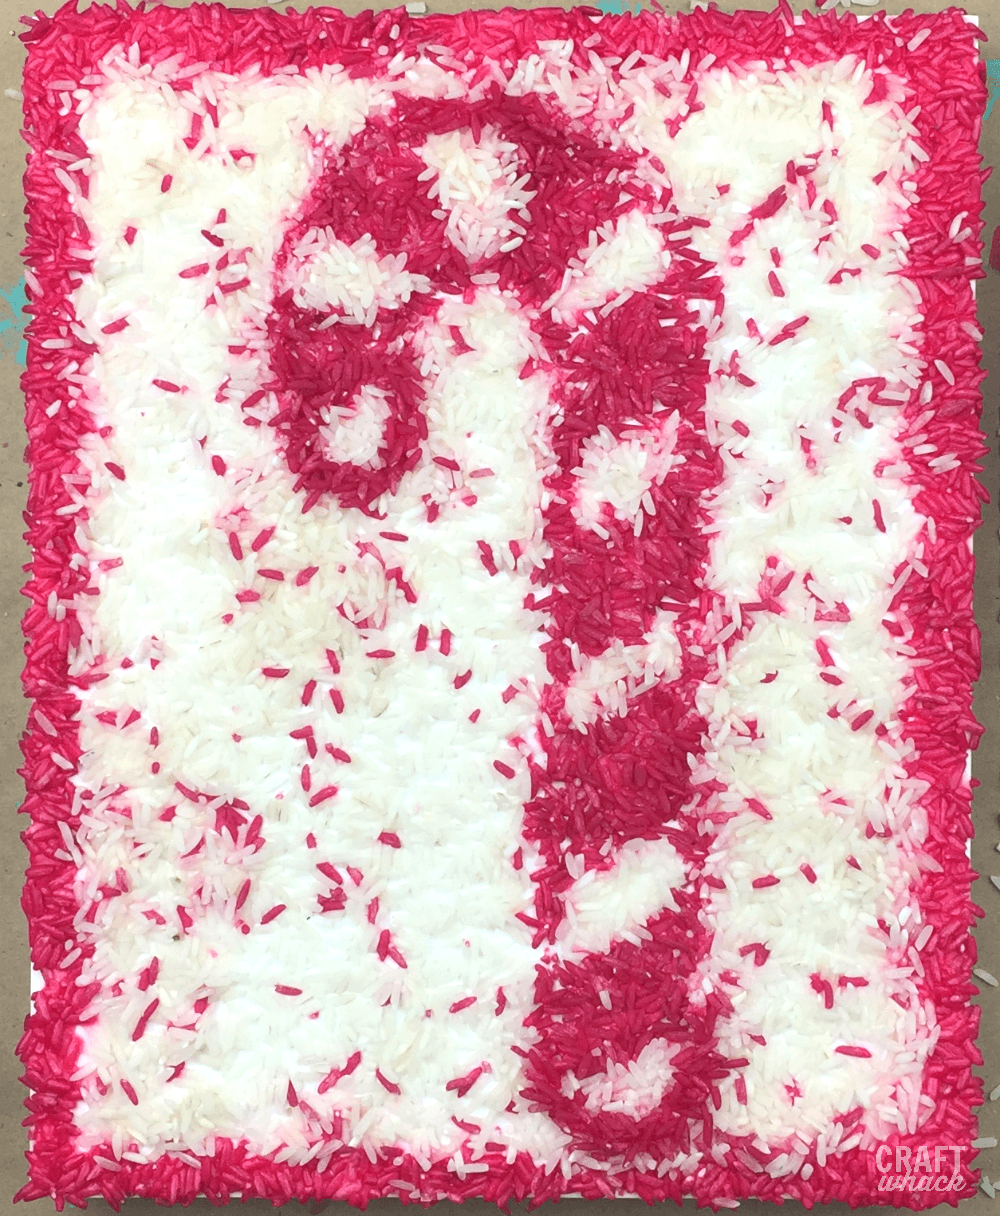 Candy cane art from dyed rice